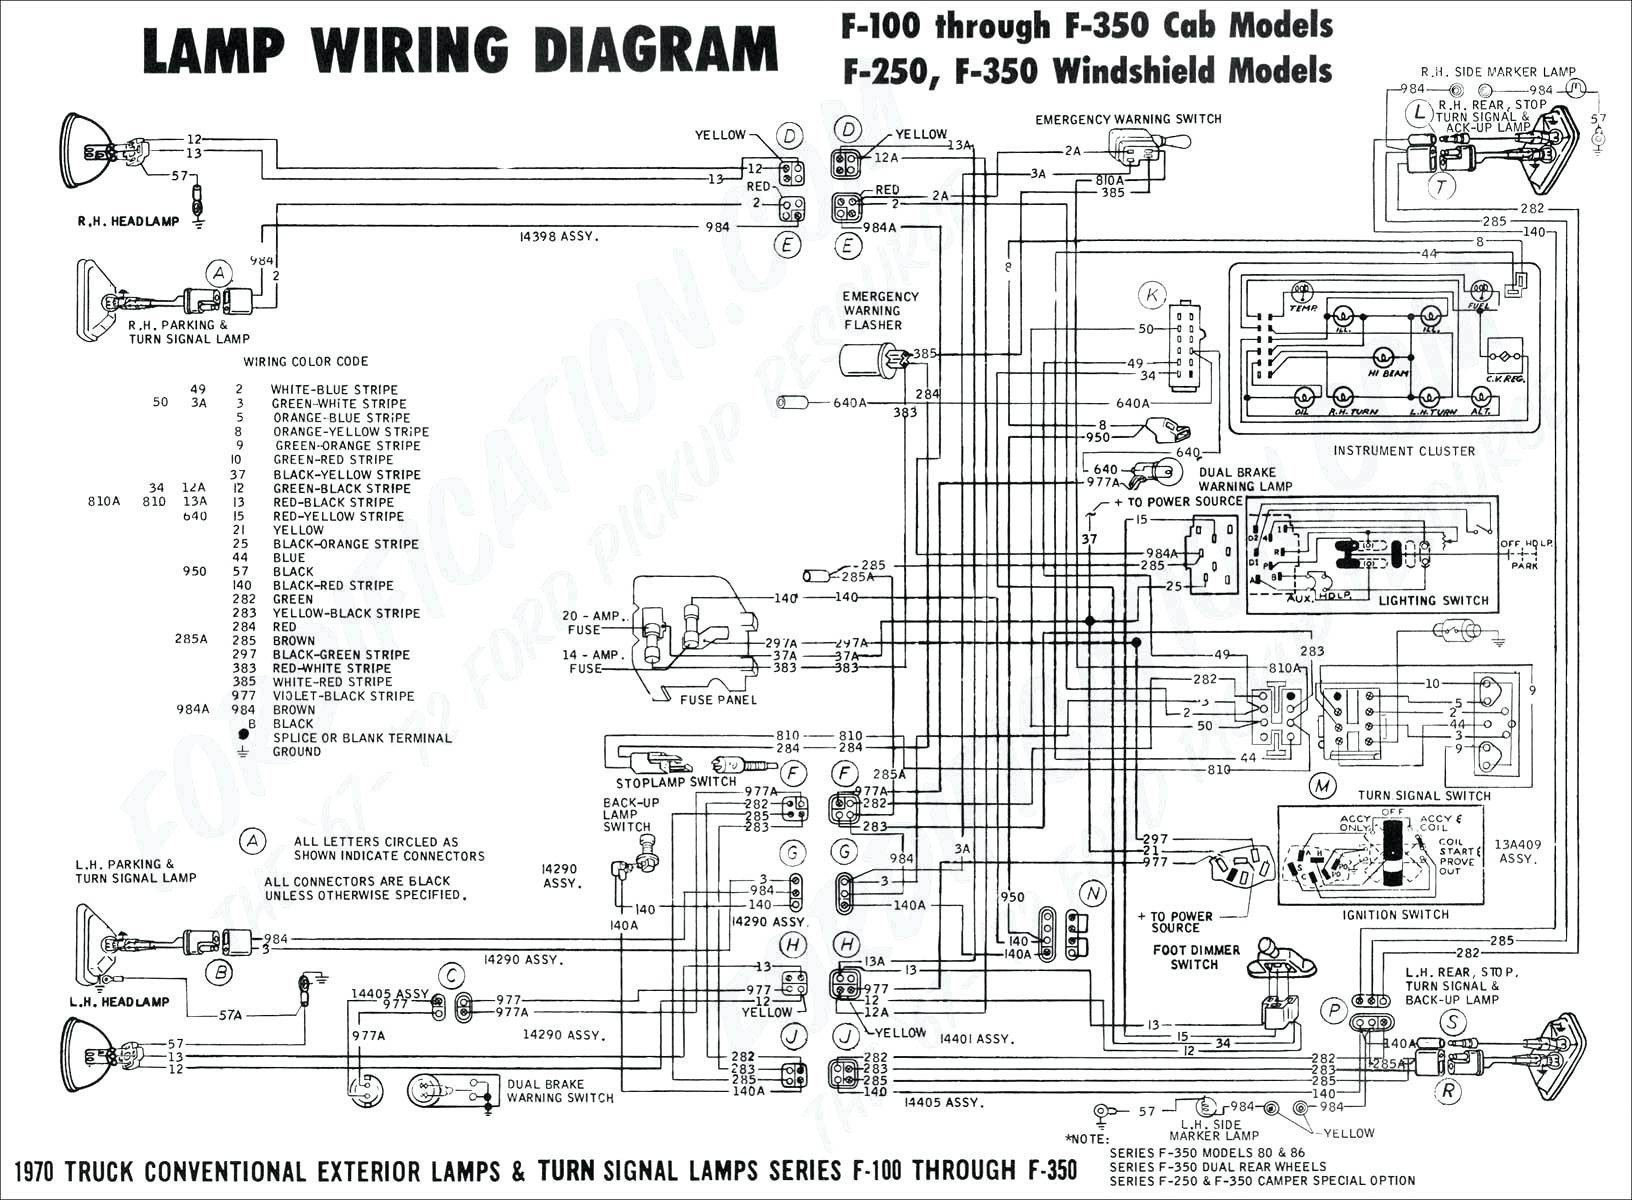 1998 ford Escort Zx2 Engine Diagram ford Ecm Wiring Diagrams Data Wiring Diagrams • Of 1998 ford Escort Zx2 Engine Diagram Category Wiring 0